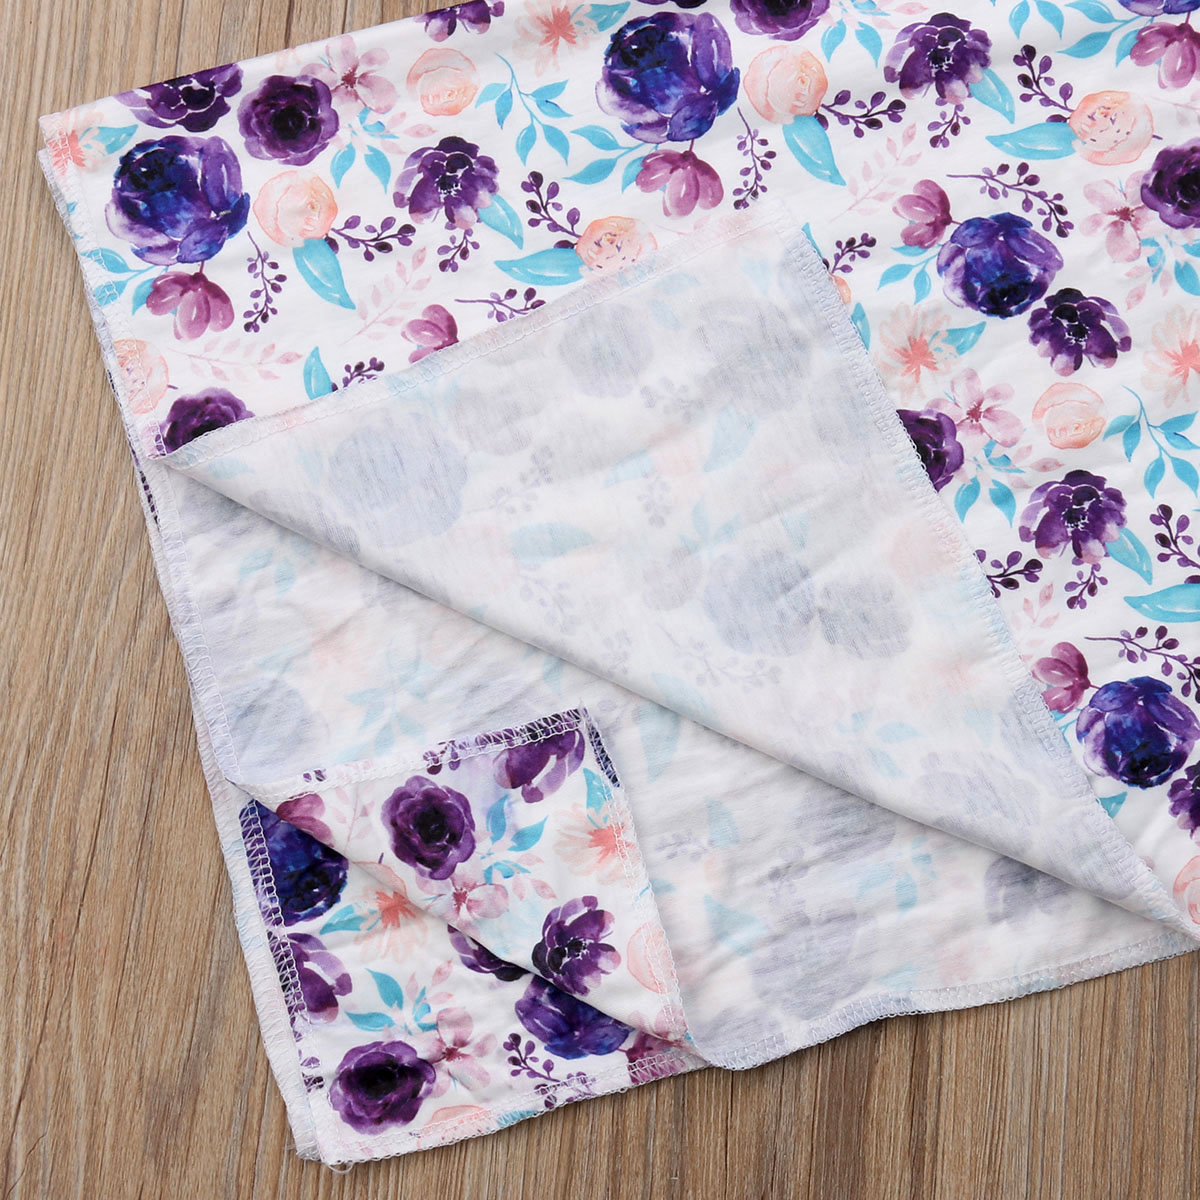 3Pcs Newborn Baby Floral Cotton Swaddle Muslin Blanket  Wrap Swaddling Blanket